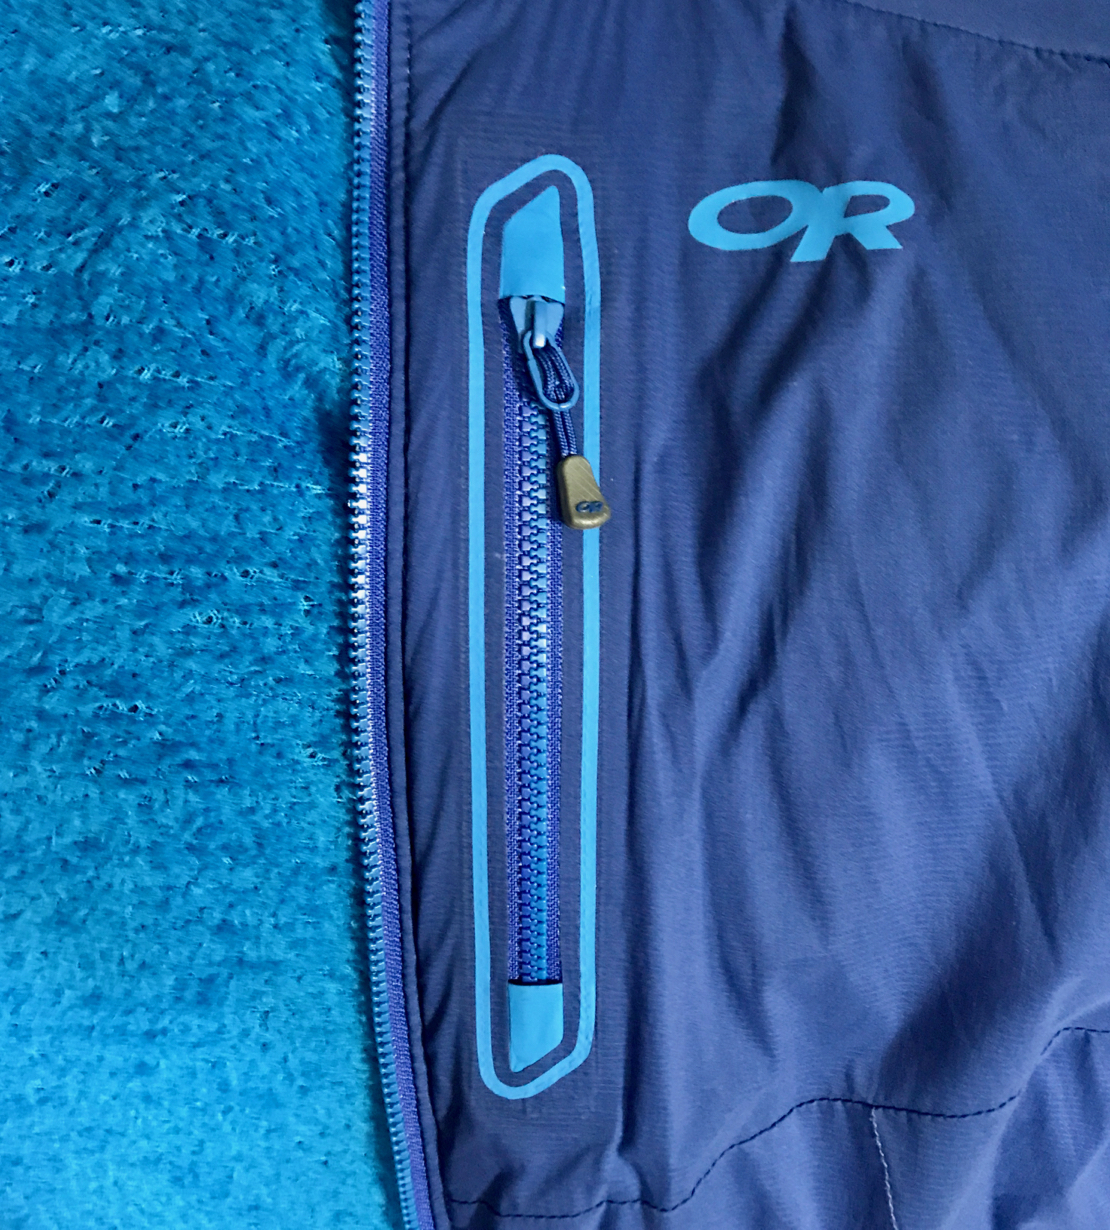 Sam Shaheen reviews the Outdoor Research Ascendant Hoody for Blister Review